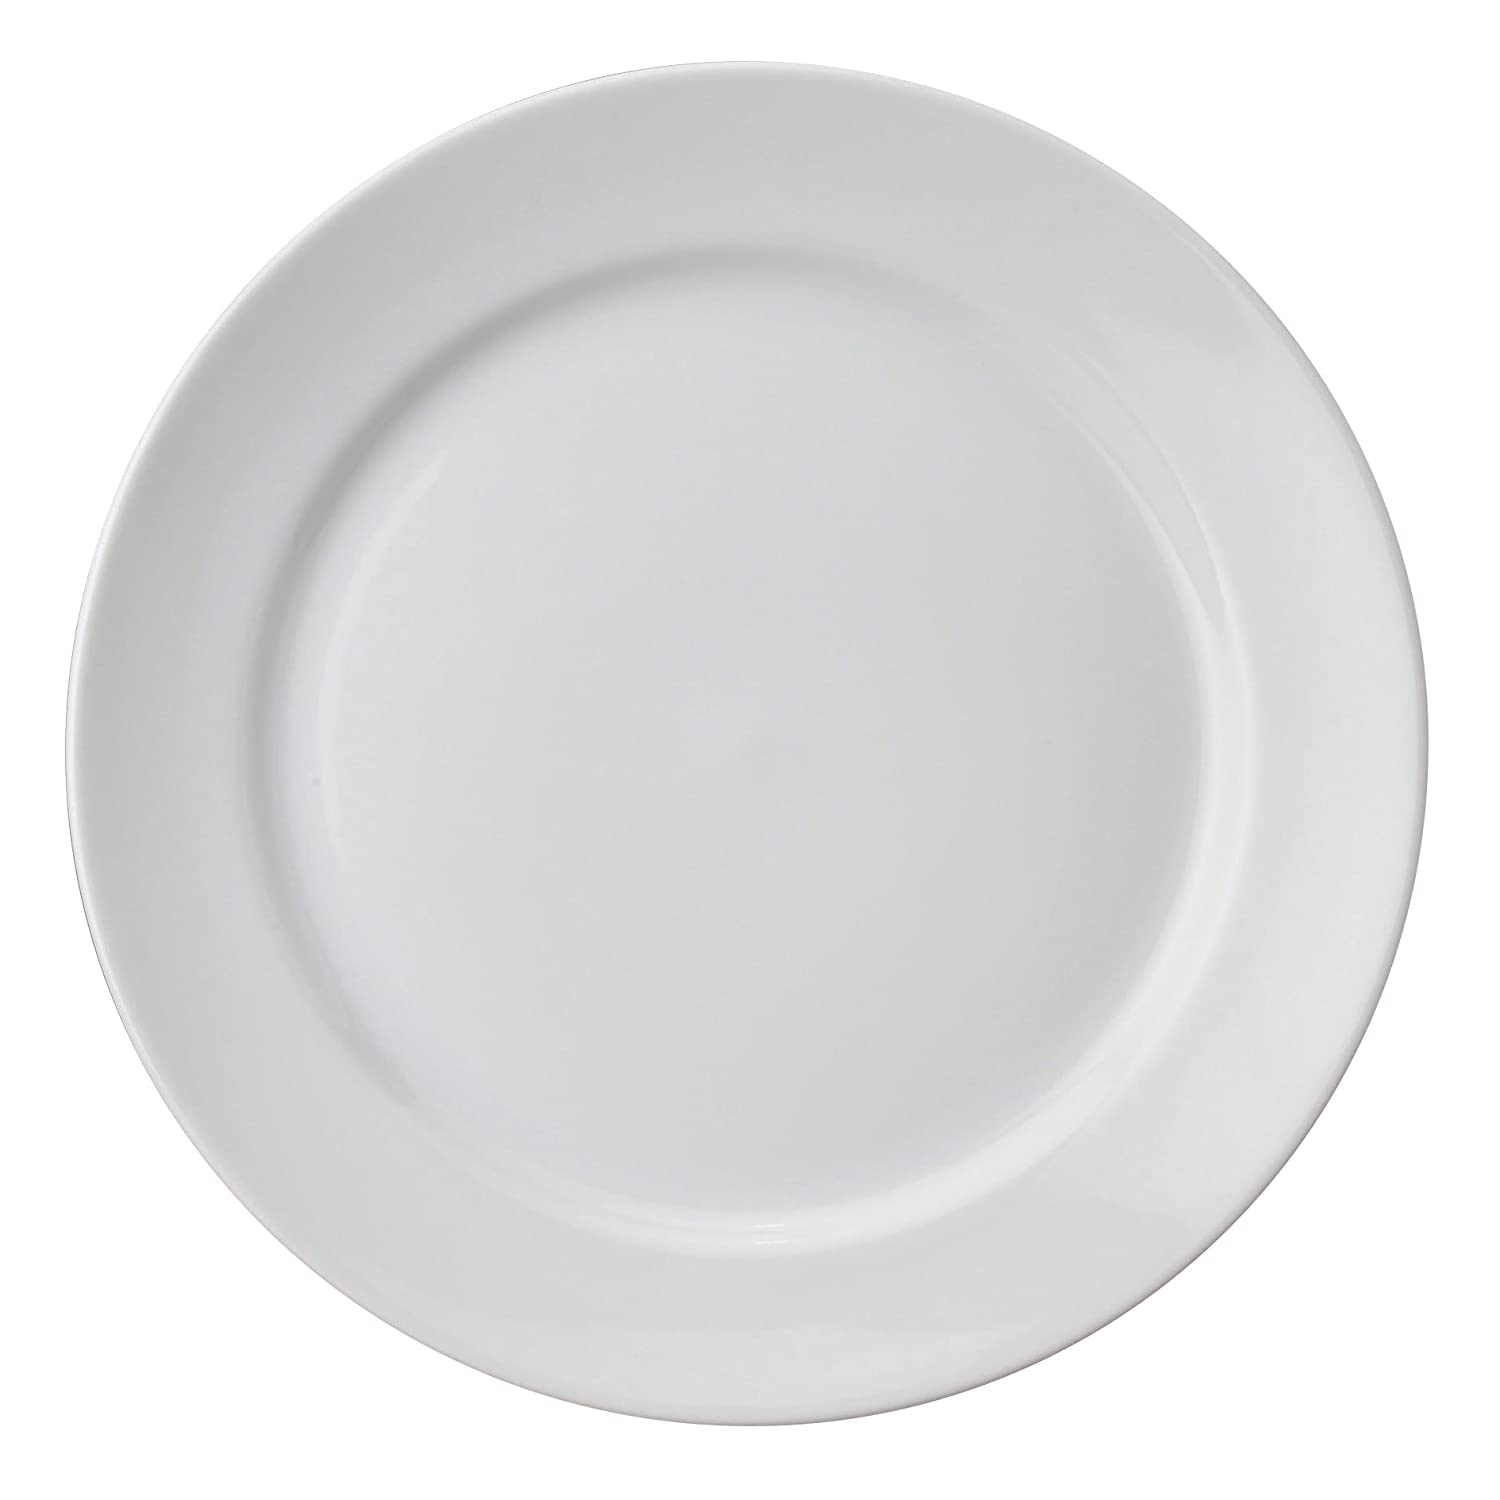 HIC Brands that Cook 6-Inch Caf White Porcelain Bread and Butter Plate 78003